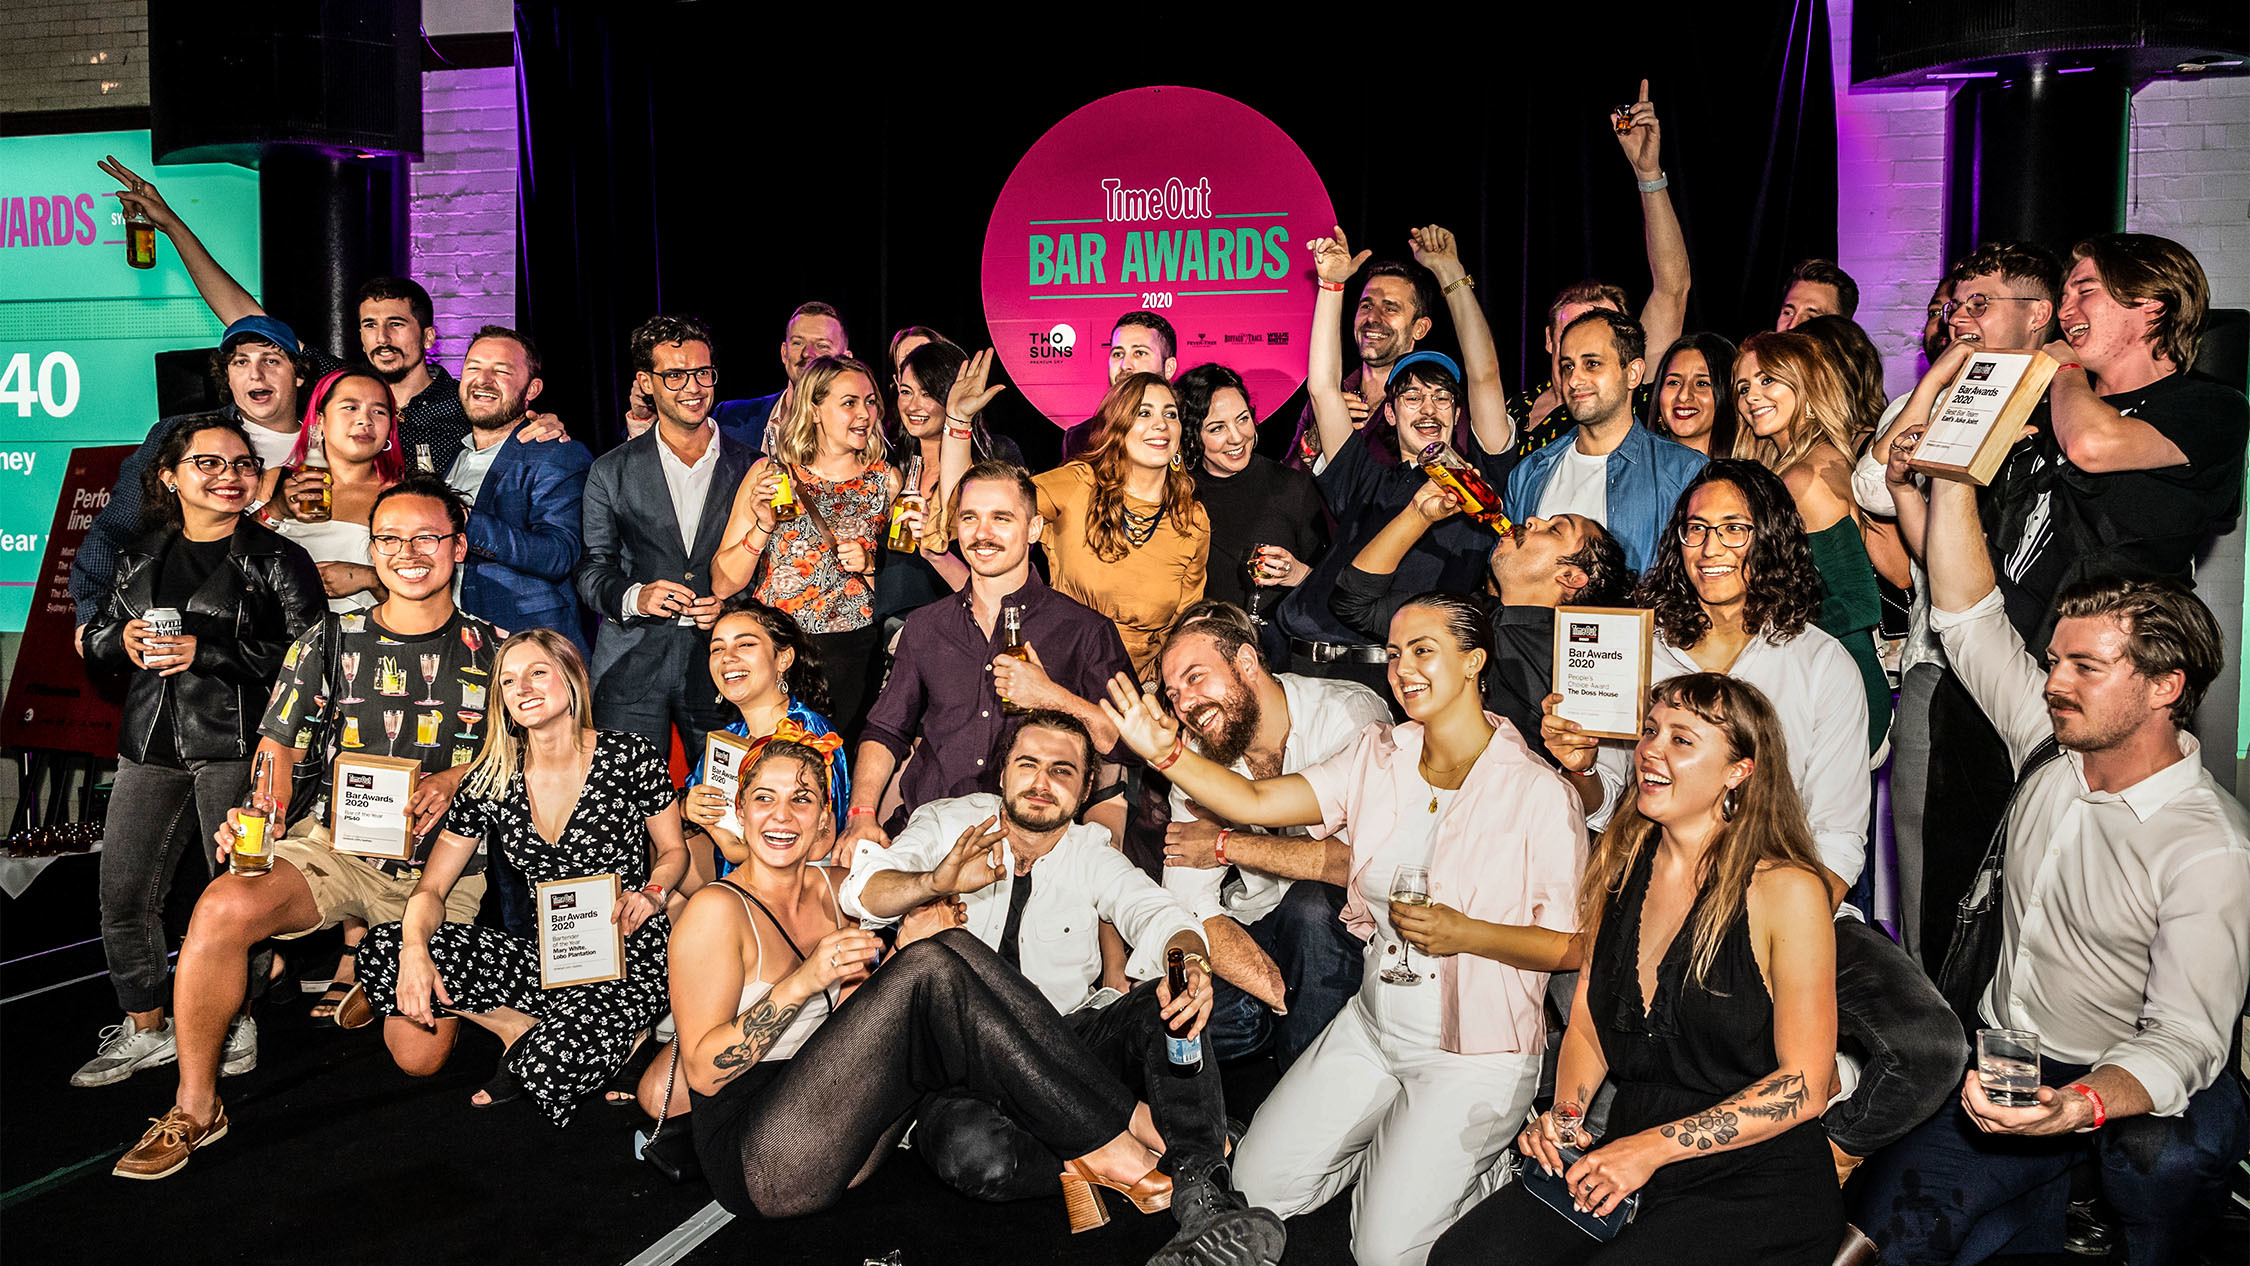 Time Out Bar Awards 2020: recap